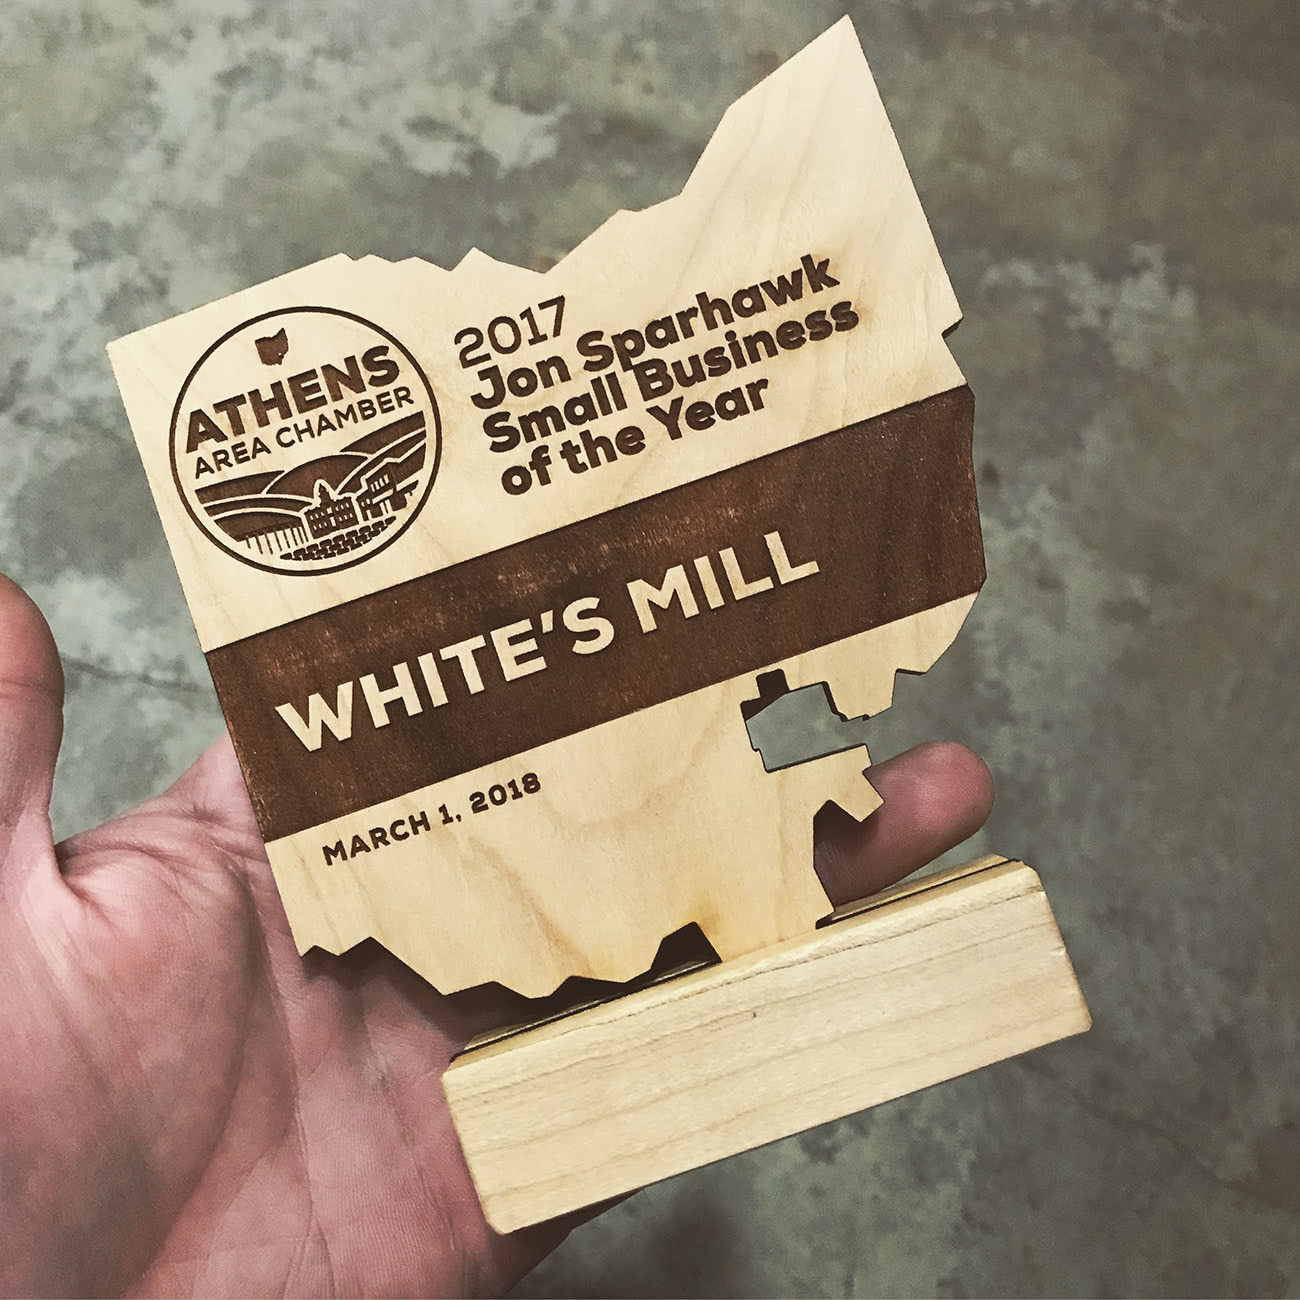 Athens Area Chamber Jon Sparhawk award to White's Mill by Red Tail Design